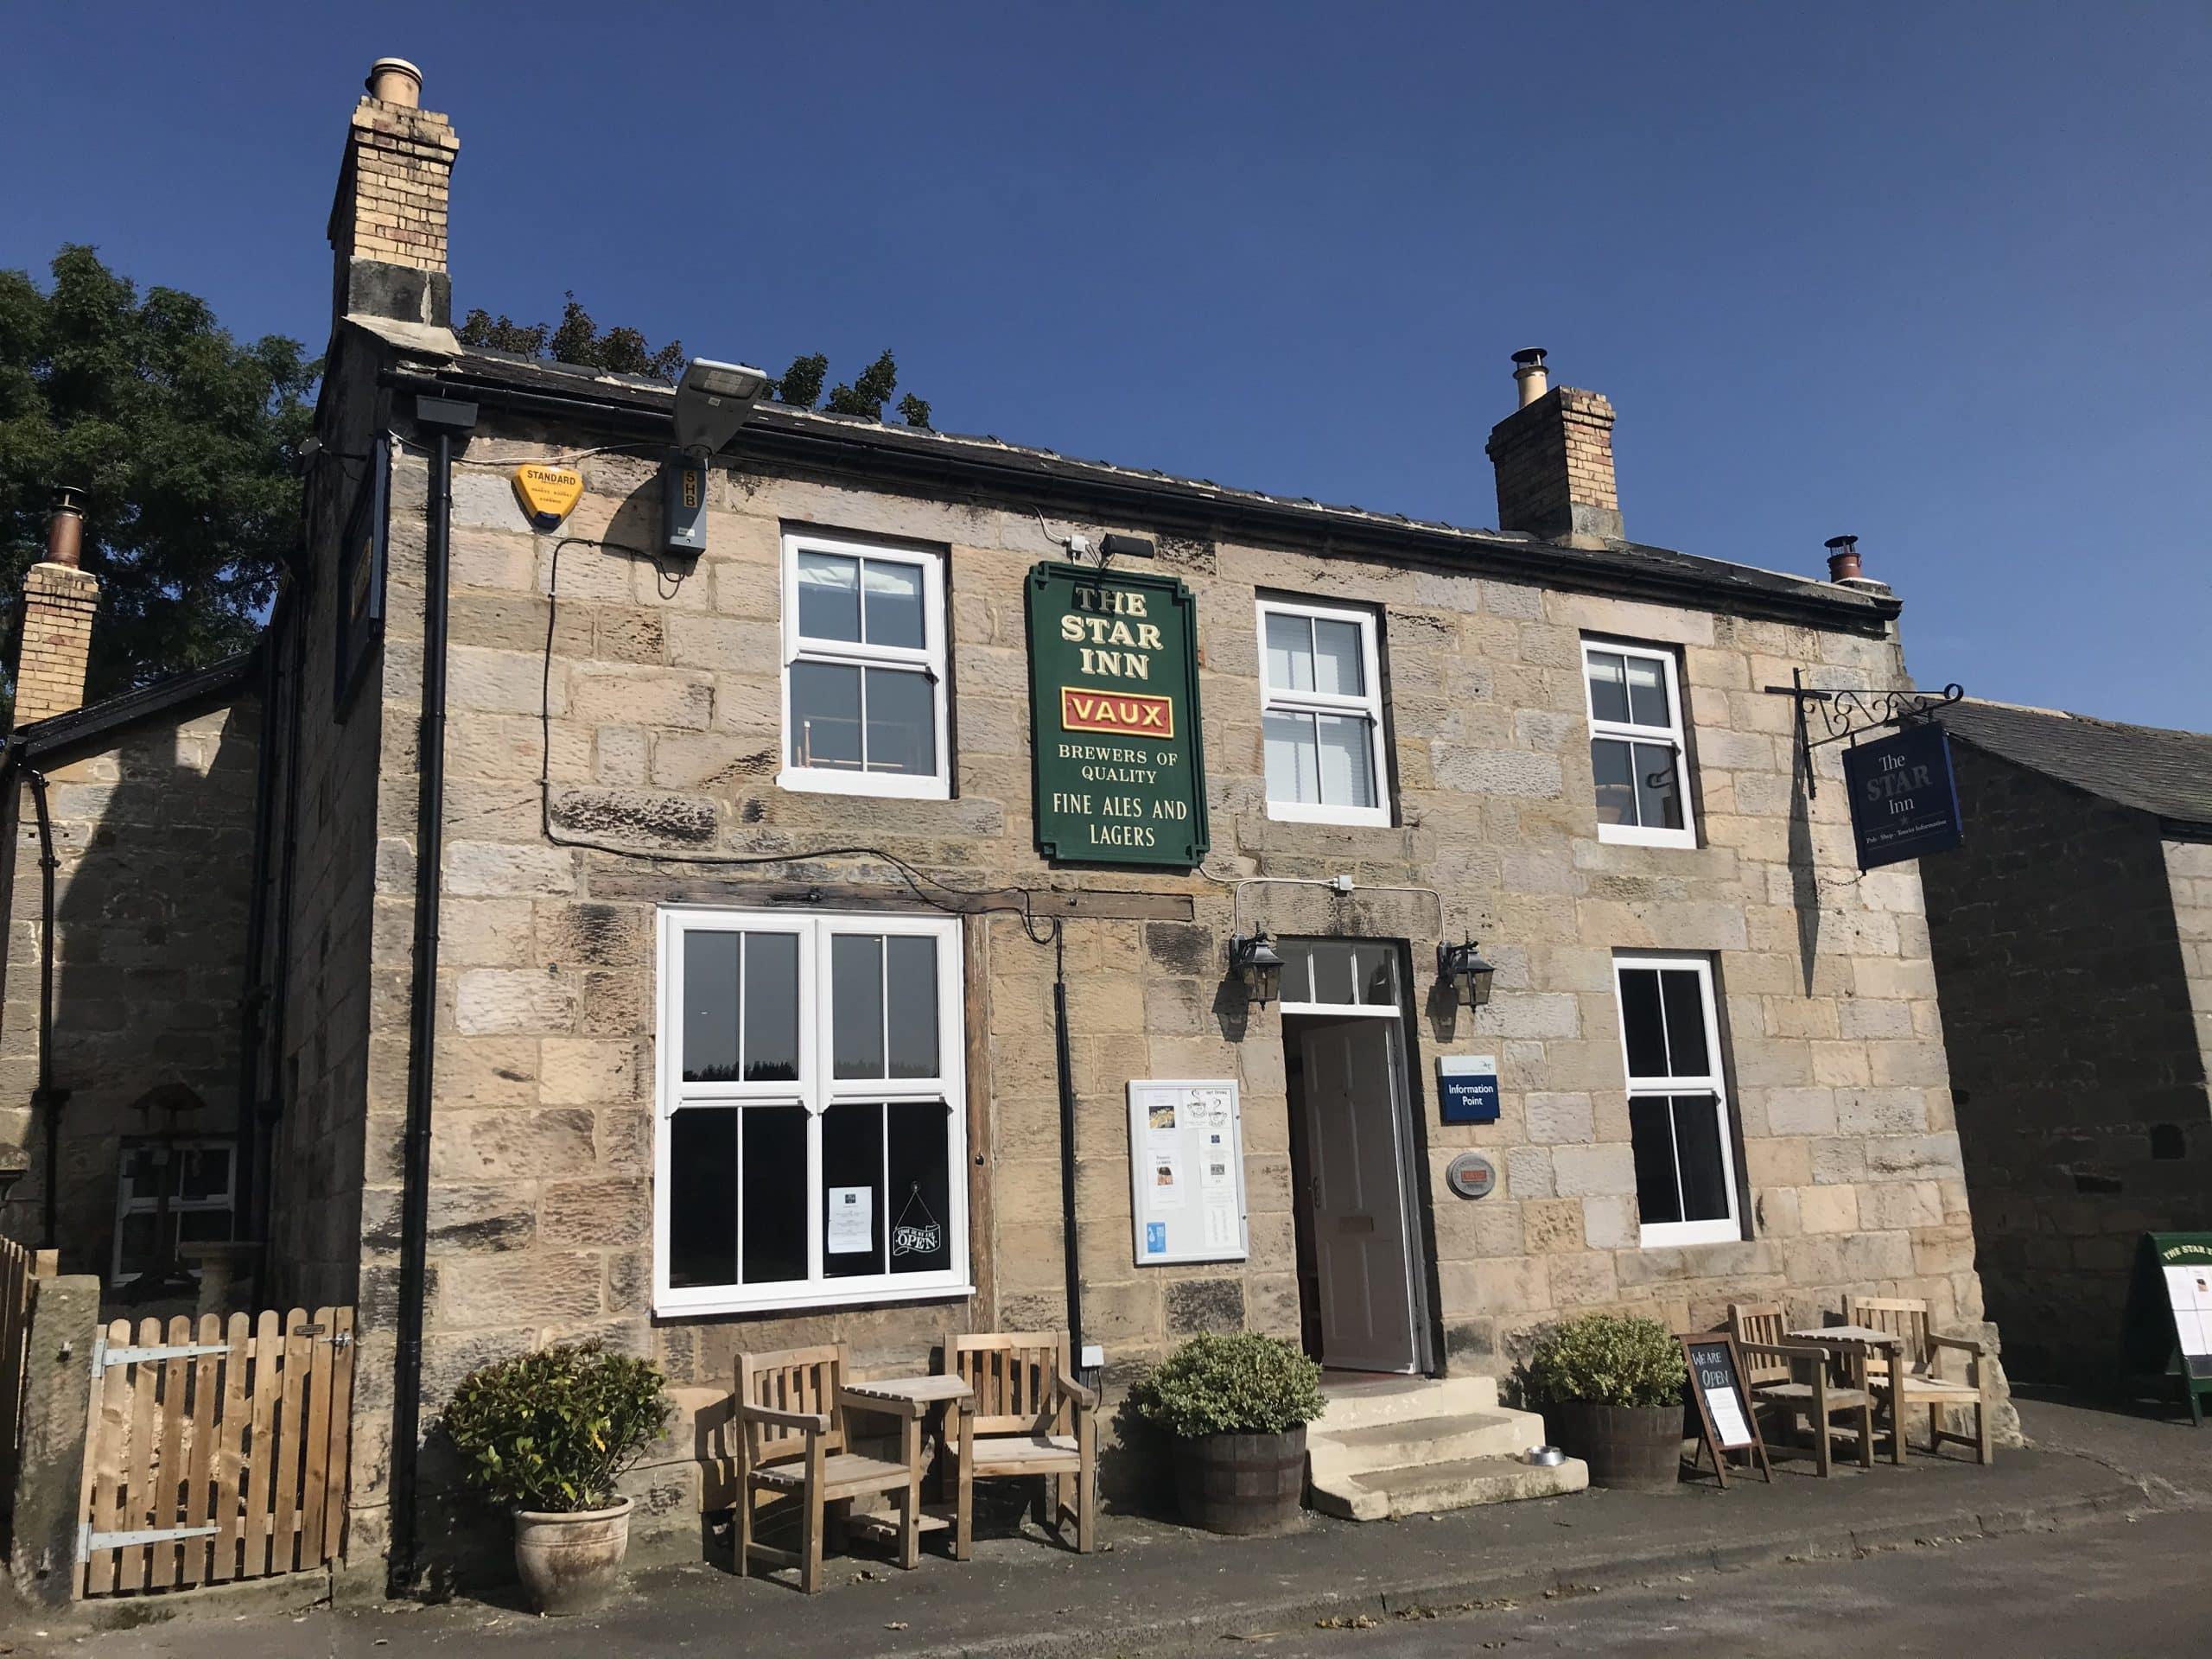 A photograph showing the exterior of The Star Inn in Harbottle